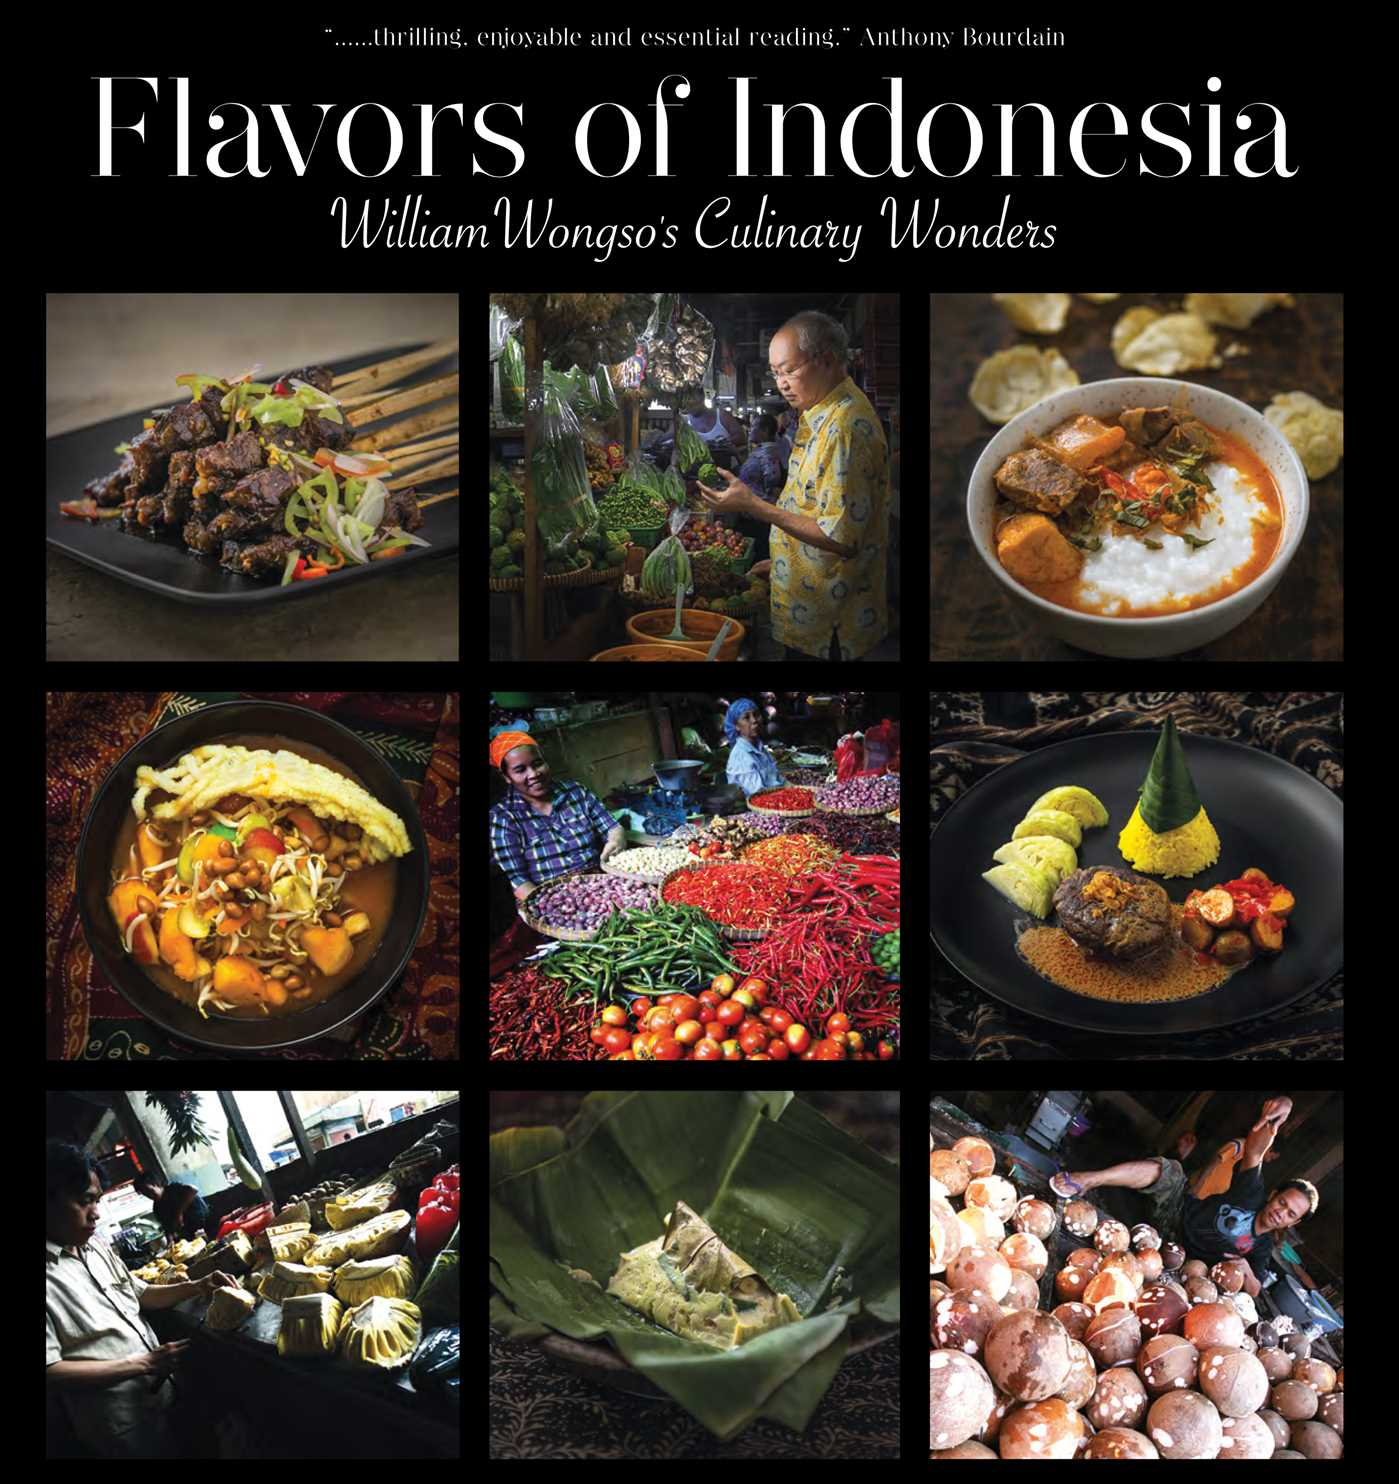 Flavors of Indonesia : William Wongso's Culinary Wonders